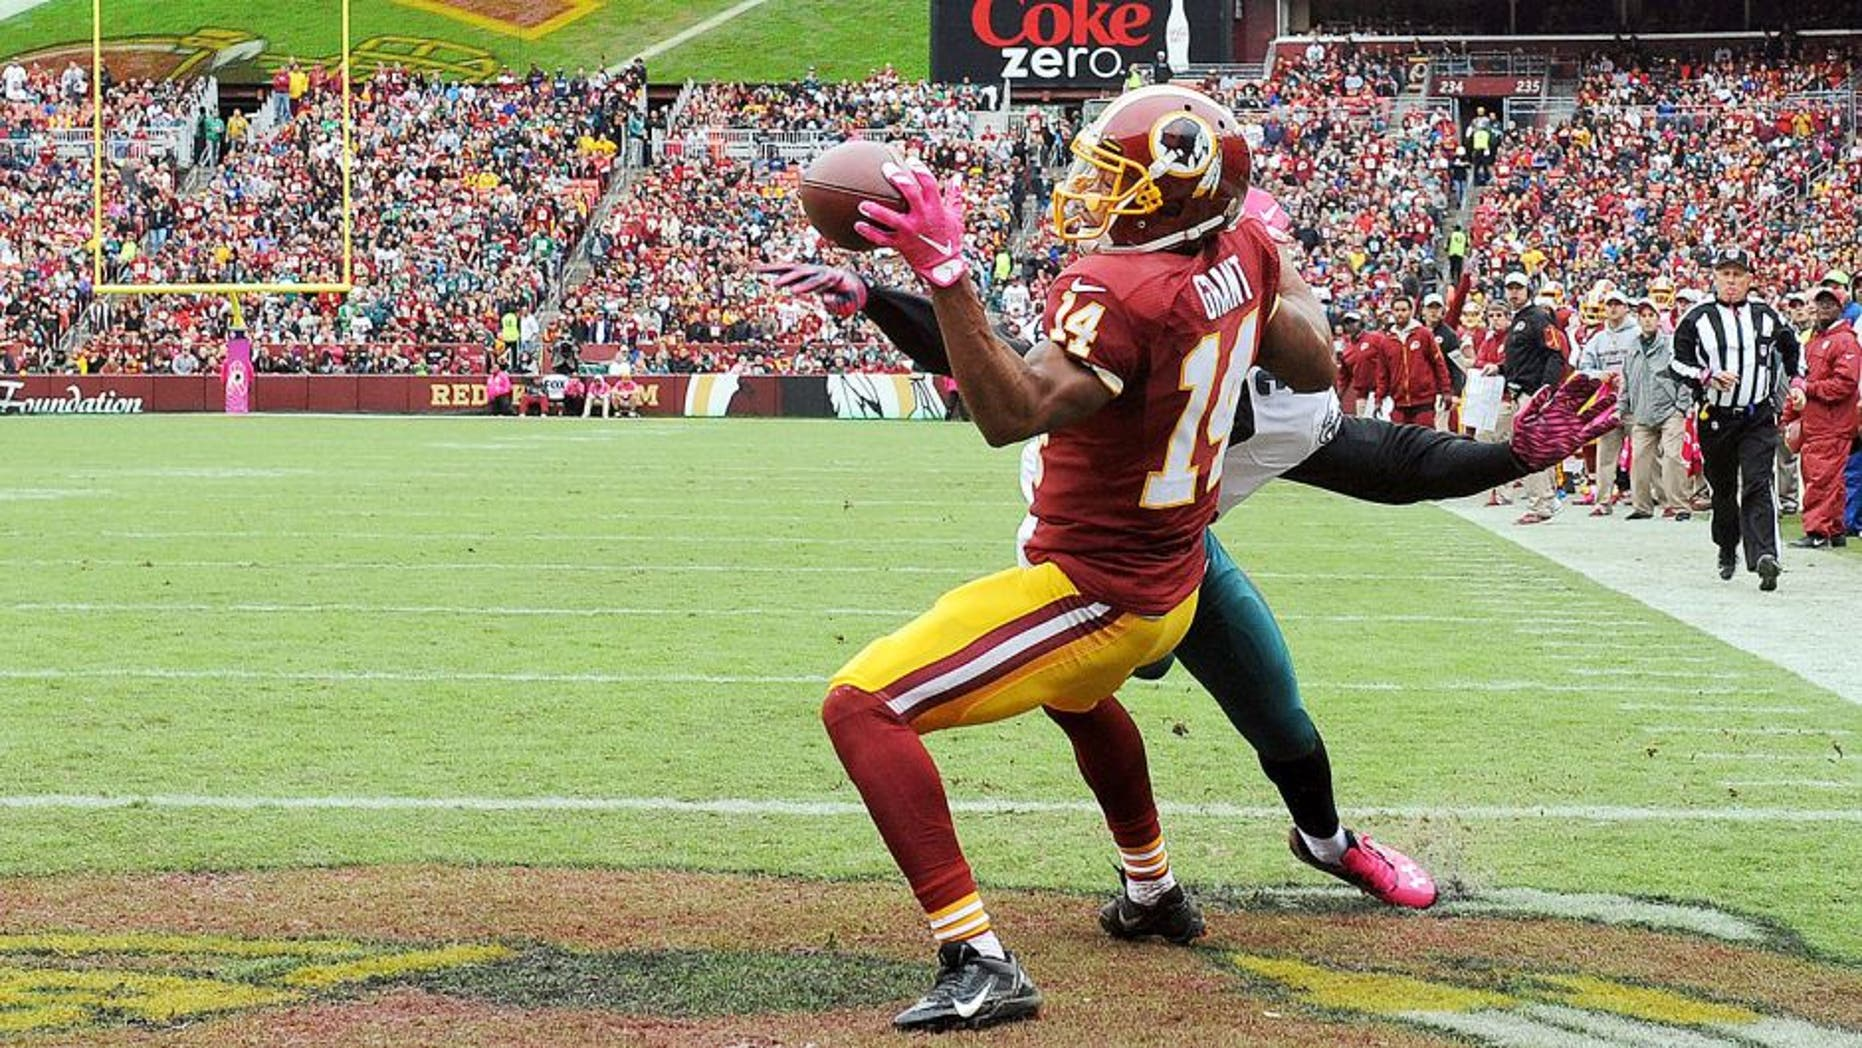 Oct 4, 2015; Landover, MD, USA; Washington Redskins wide receiver Ryan Grant (14) is interfered with by Philadelphia Eagles cornerback Eric Rowe (32) during the first half at FedEx Field. Mandatory Credit: Brad Mills-USA TODAY Sports